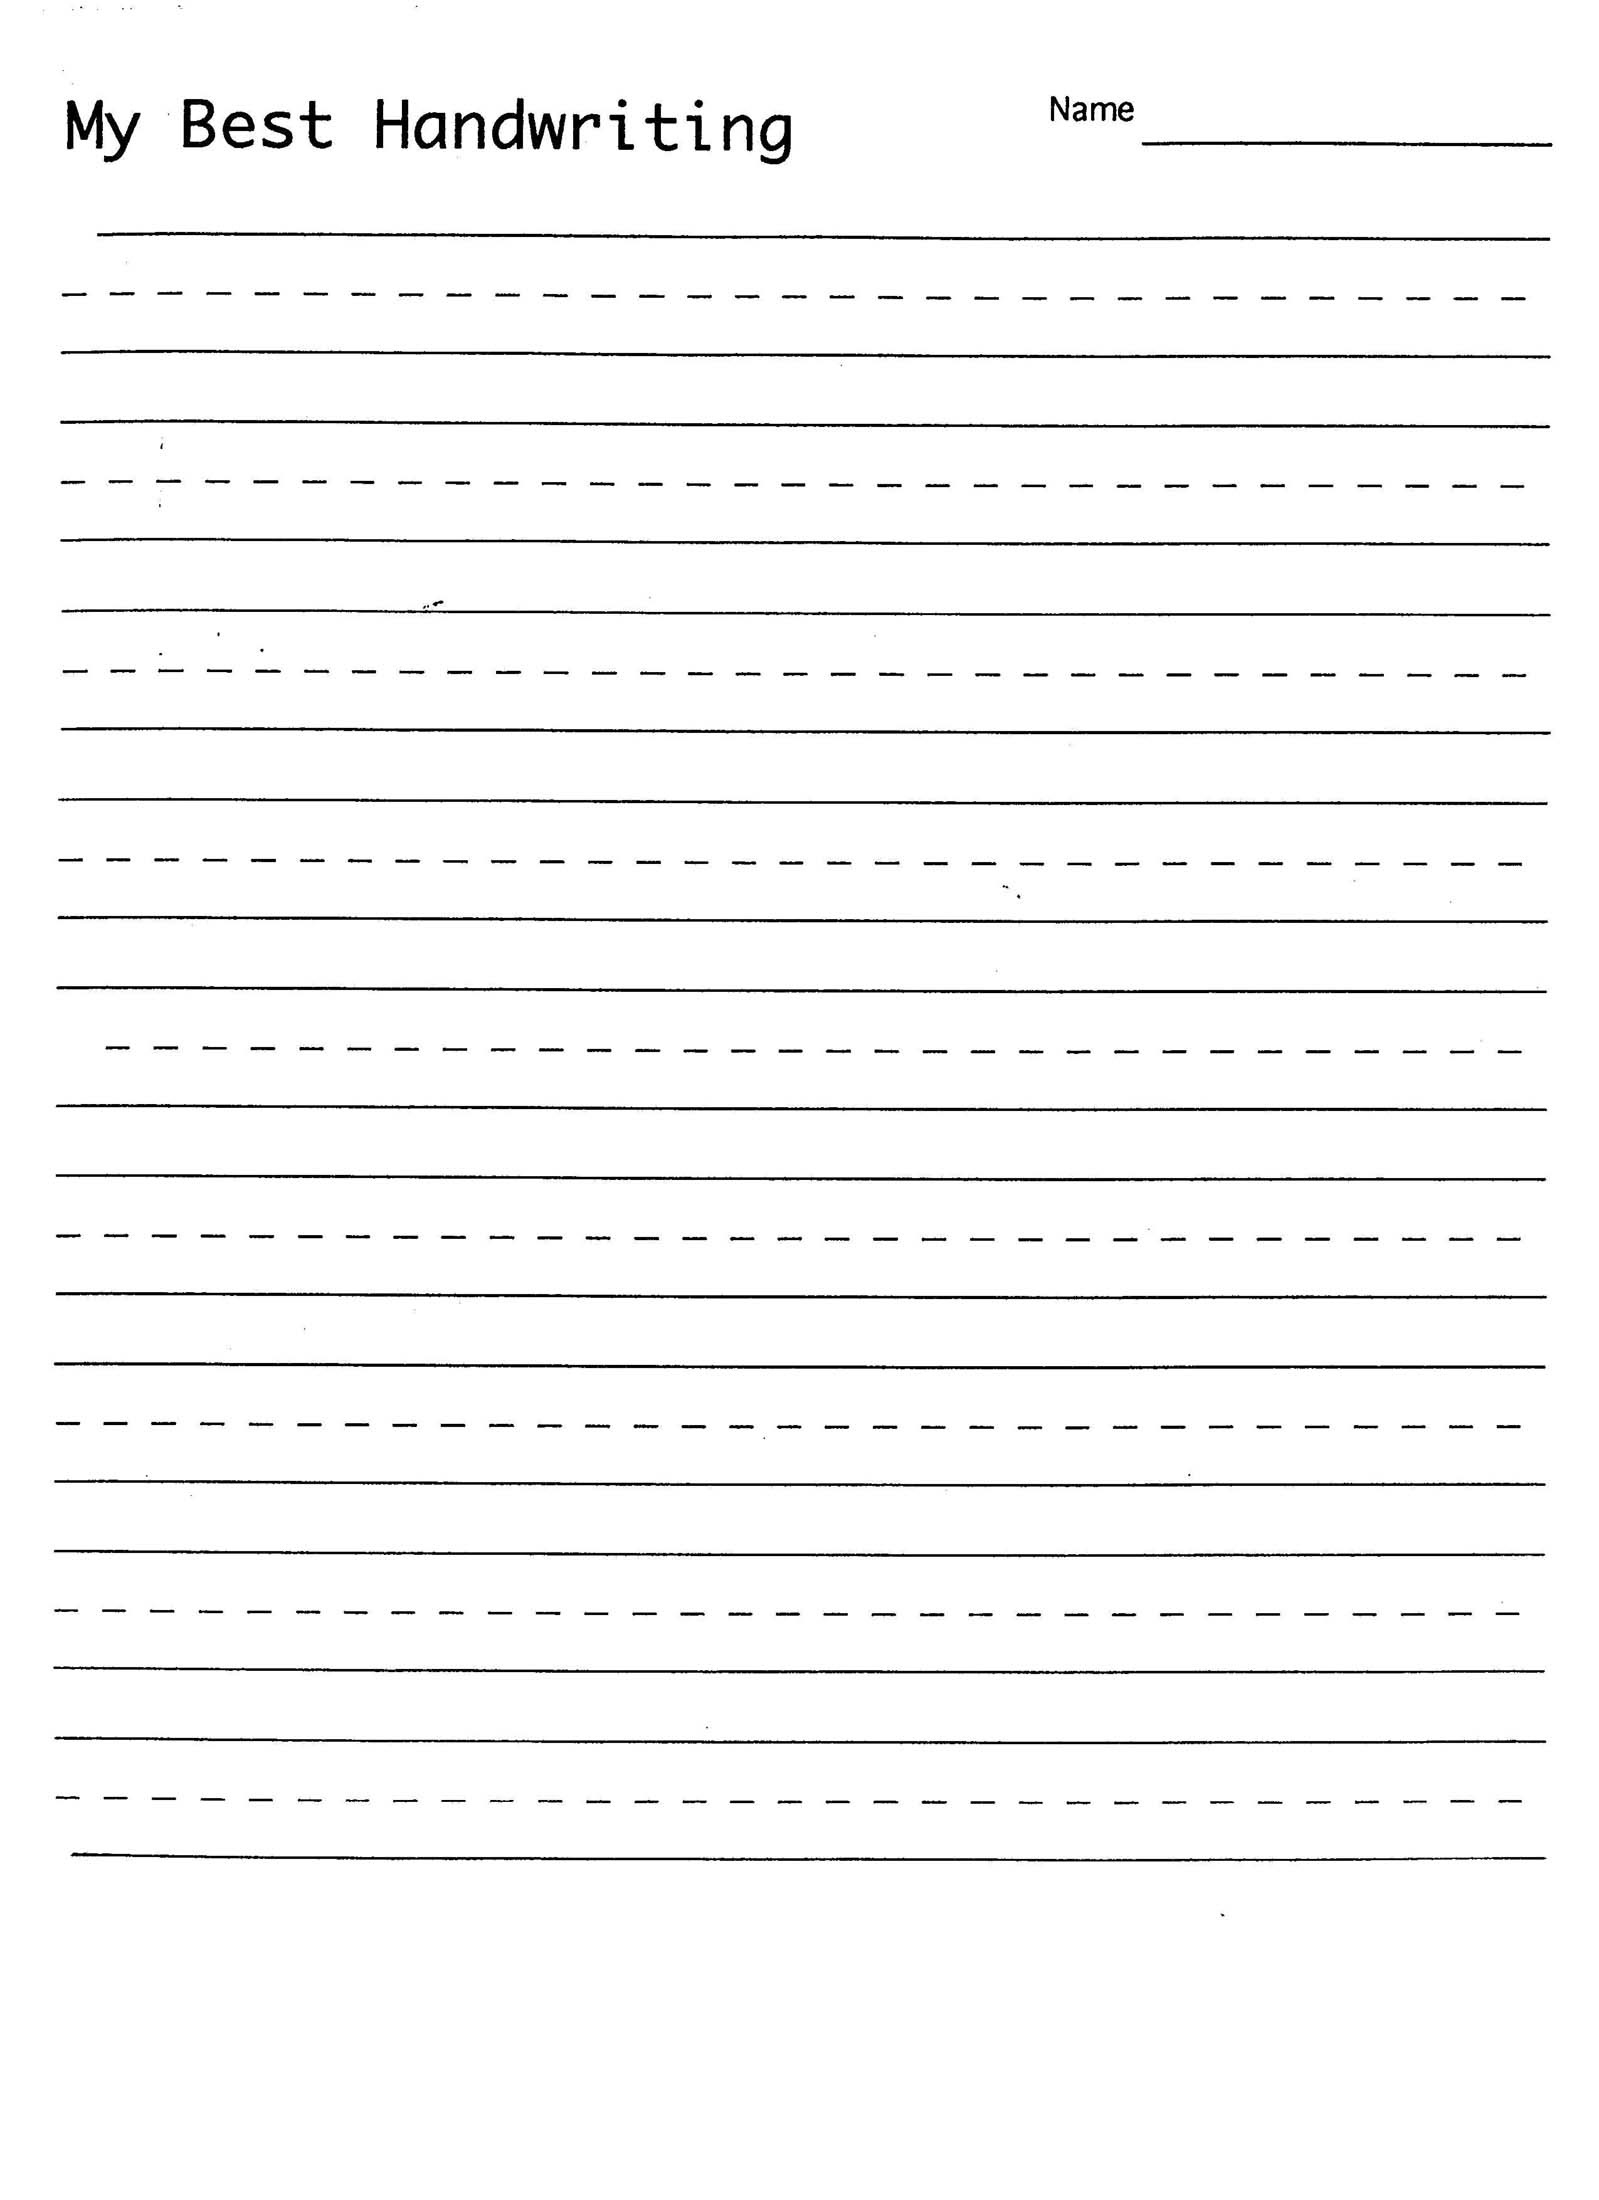 Handwriting Practice Sheets Template Ms Word Handwriting